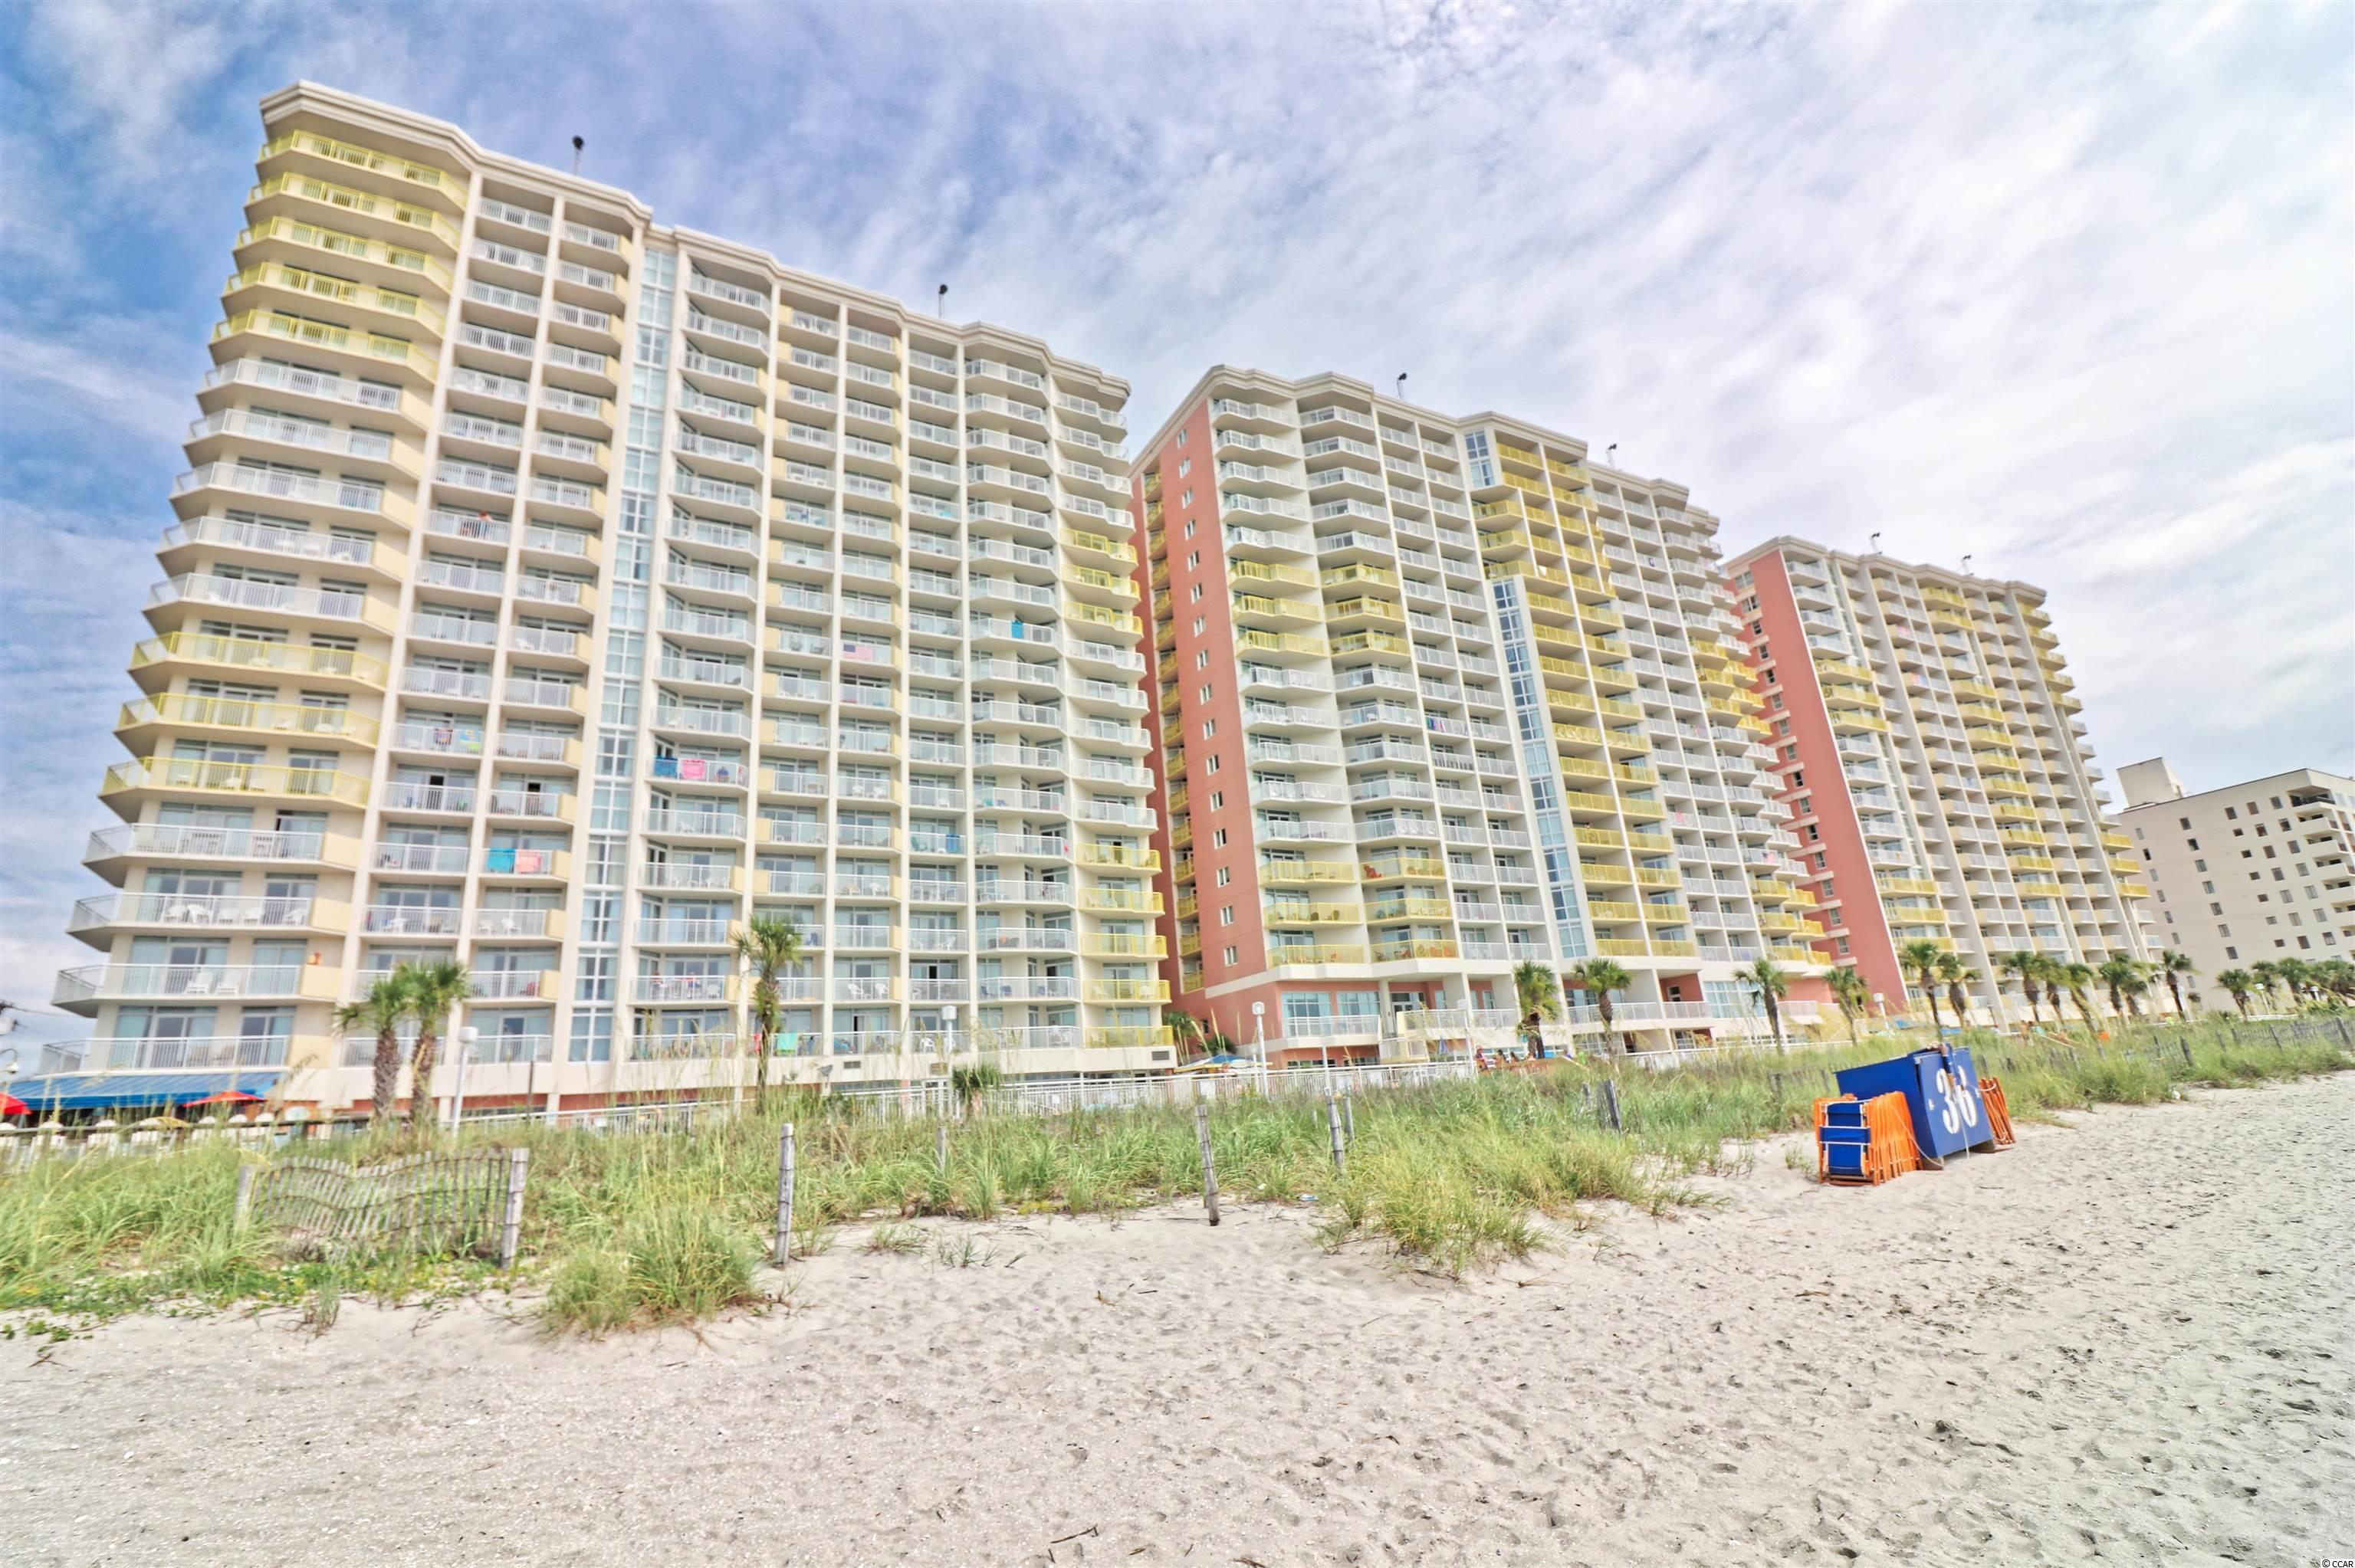 DIRECT  OCEANFRONT 2 bedroom / 2 full bath condominium in one of the Grand Strand's most popular resort destinations -Baywatch Resort in North Myrtle Beach, SC. The views are unbelievable - you can see the ocean for miles and miles including the entire southern panoramic coastline! This condominium is in tip-top shape with all of the required upgrades from the onsite rental management company. Full-sized kitchen with refrigerator, dishwasher, microwave oven, stove and oven, and garbage disposal. The owner's bedroom has a king size bed and a nice jetted garden tub. There are flatscreen TVs in the living room as well as both bedrooms. There is also an owners' closet for you to store your everyday items so that you don't have to bring them with you on each vacation. Baywatch Resort is a full-service resort featuring: valet service from the moment you arrive; onsite Beach Bar; onsite restaurant; onsite bar/grill; 18 indoor and outdoor pools, lazy rivers, and hot tubs; 600 feet of the oceanfront pool deck with multiple beach accesses; convenience store and gift shop; cable TV with free HBO; 6500 sq. ft. of meeting space, banquet, and exhibit space; fitness center; onsite Spa Services; free Wi-Fi access in all condos; business center; golf and entertainment packages; and it is a smoke-free resort. Take advantage of the current market values and finally own that oceanfront property you know you've always dreamed about!